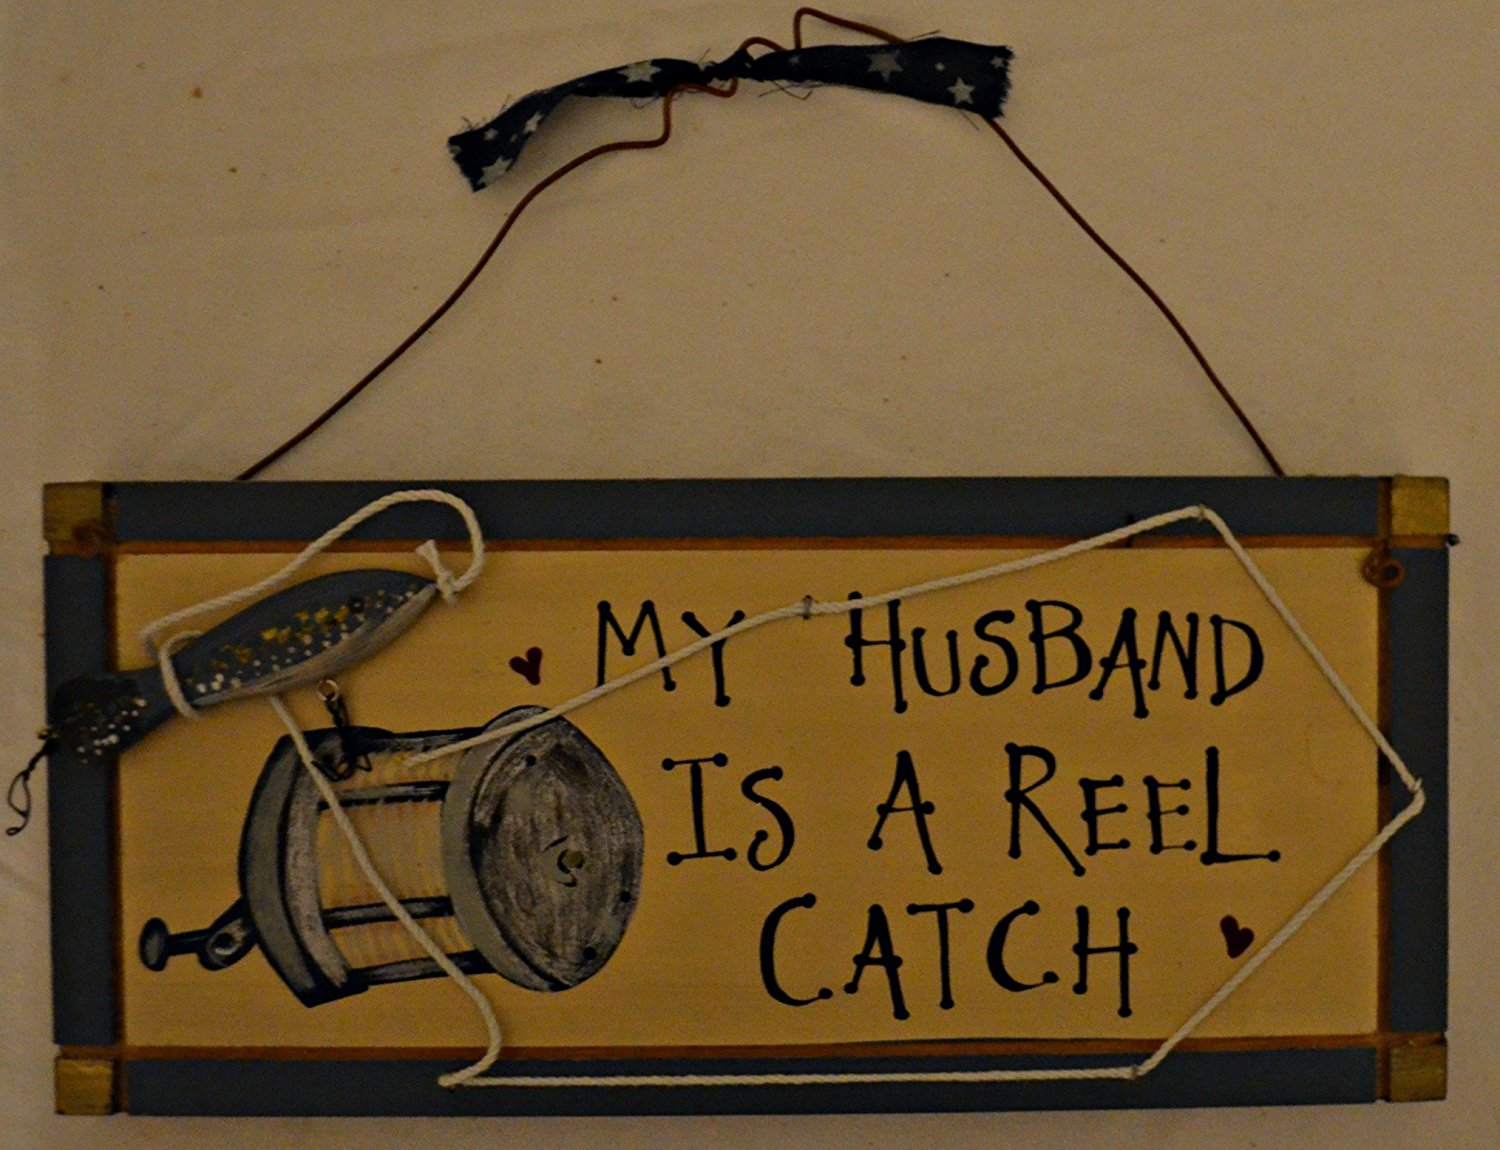 "Rustic Country Wood Plaque Sign Decoration with a Metal Wire for Hanging 12 x 5 1/2 x 1 Inches. Wooden Sign Saying ""My Husband Is A Reel Catch"" with Decoration Fishing Line, Lure, Hook and Blue Border"